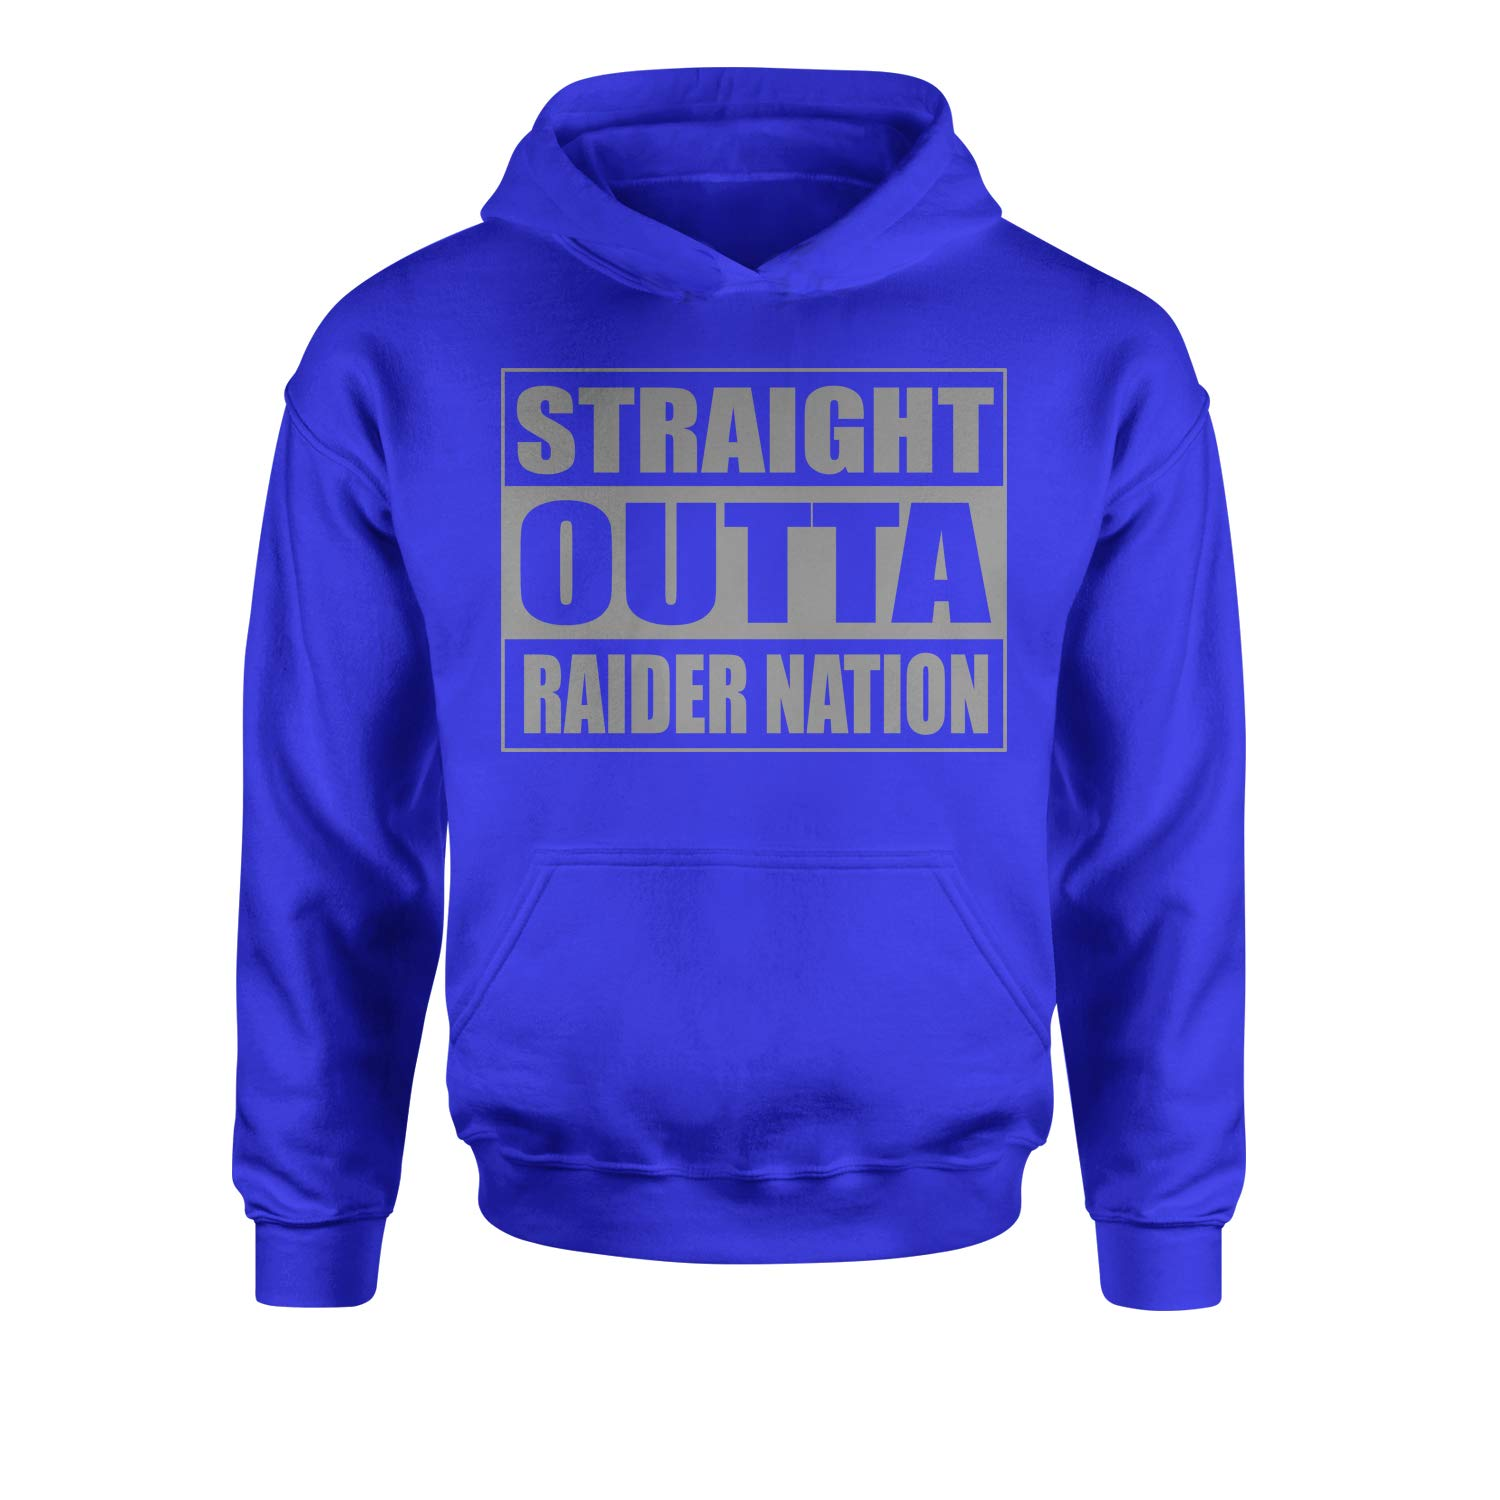 Expression Tees Straight Outta Raider Nation Youth-Sized Hoodie